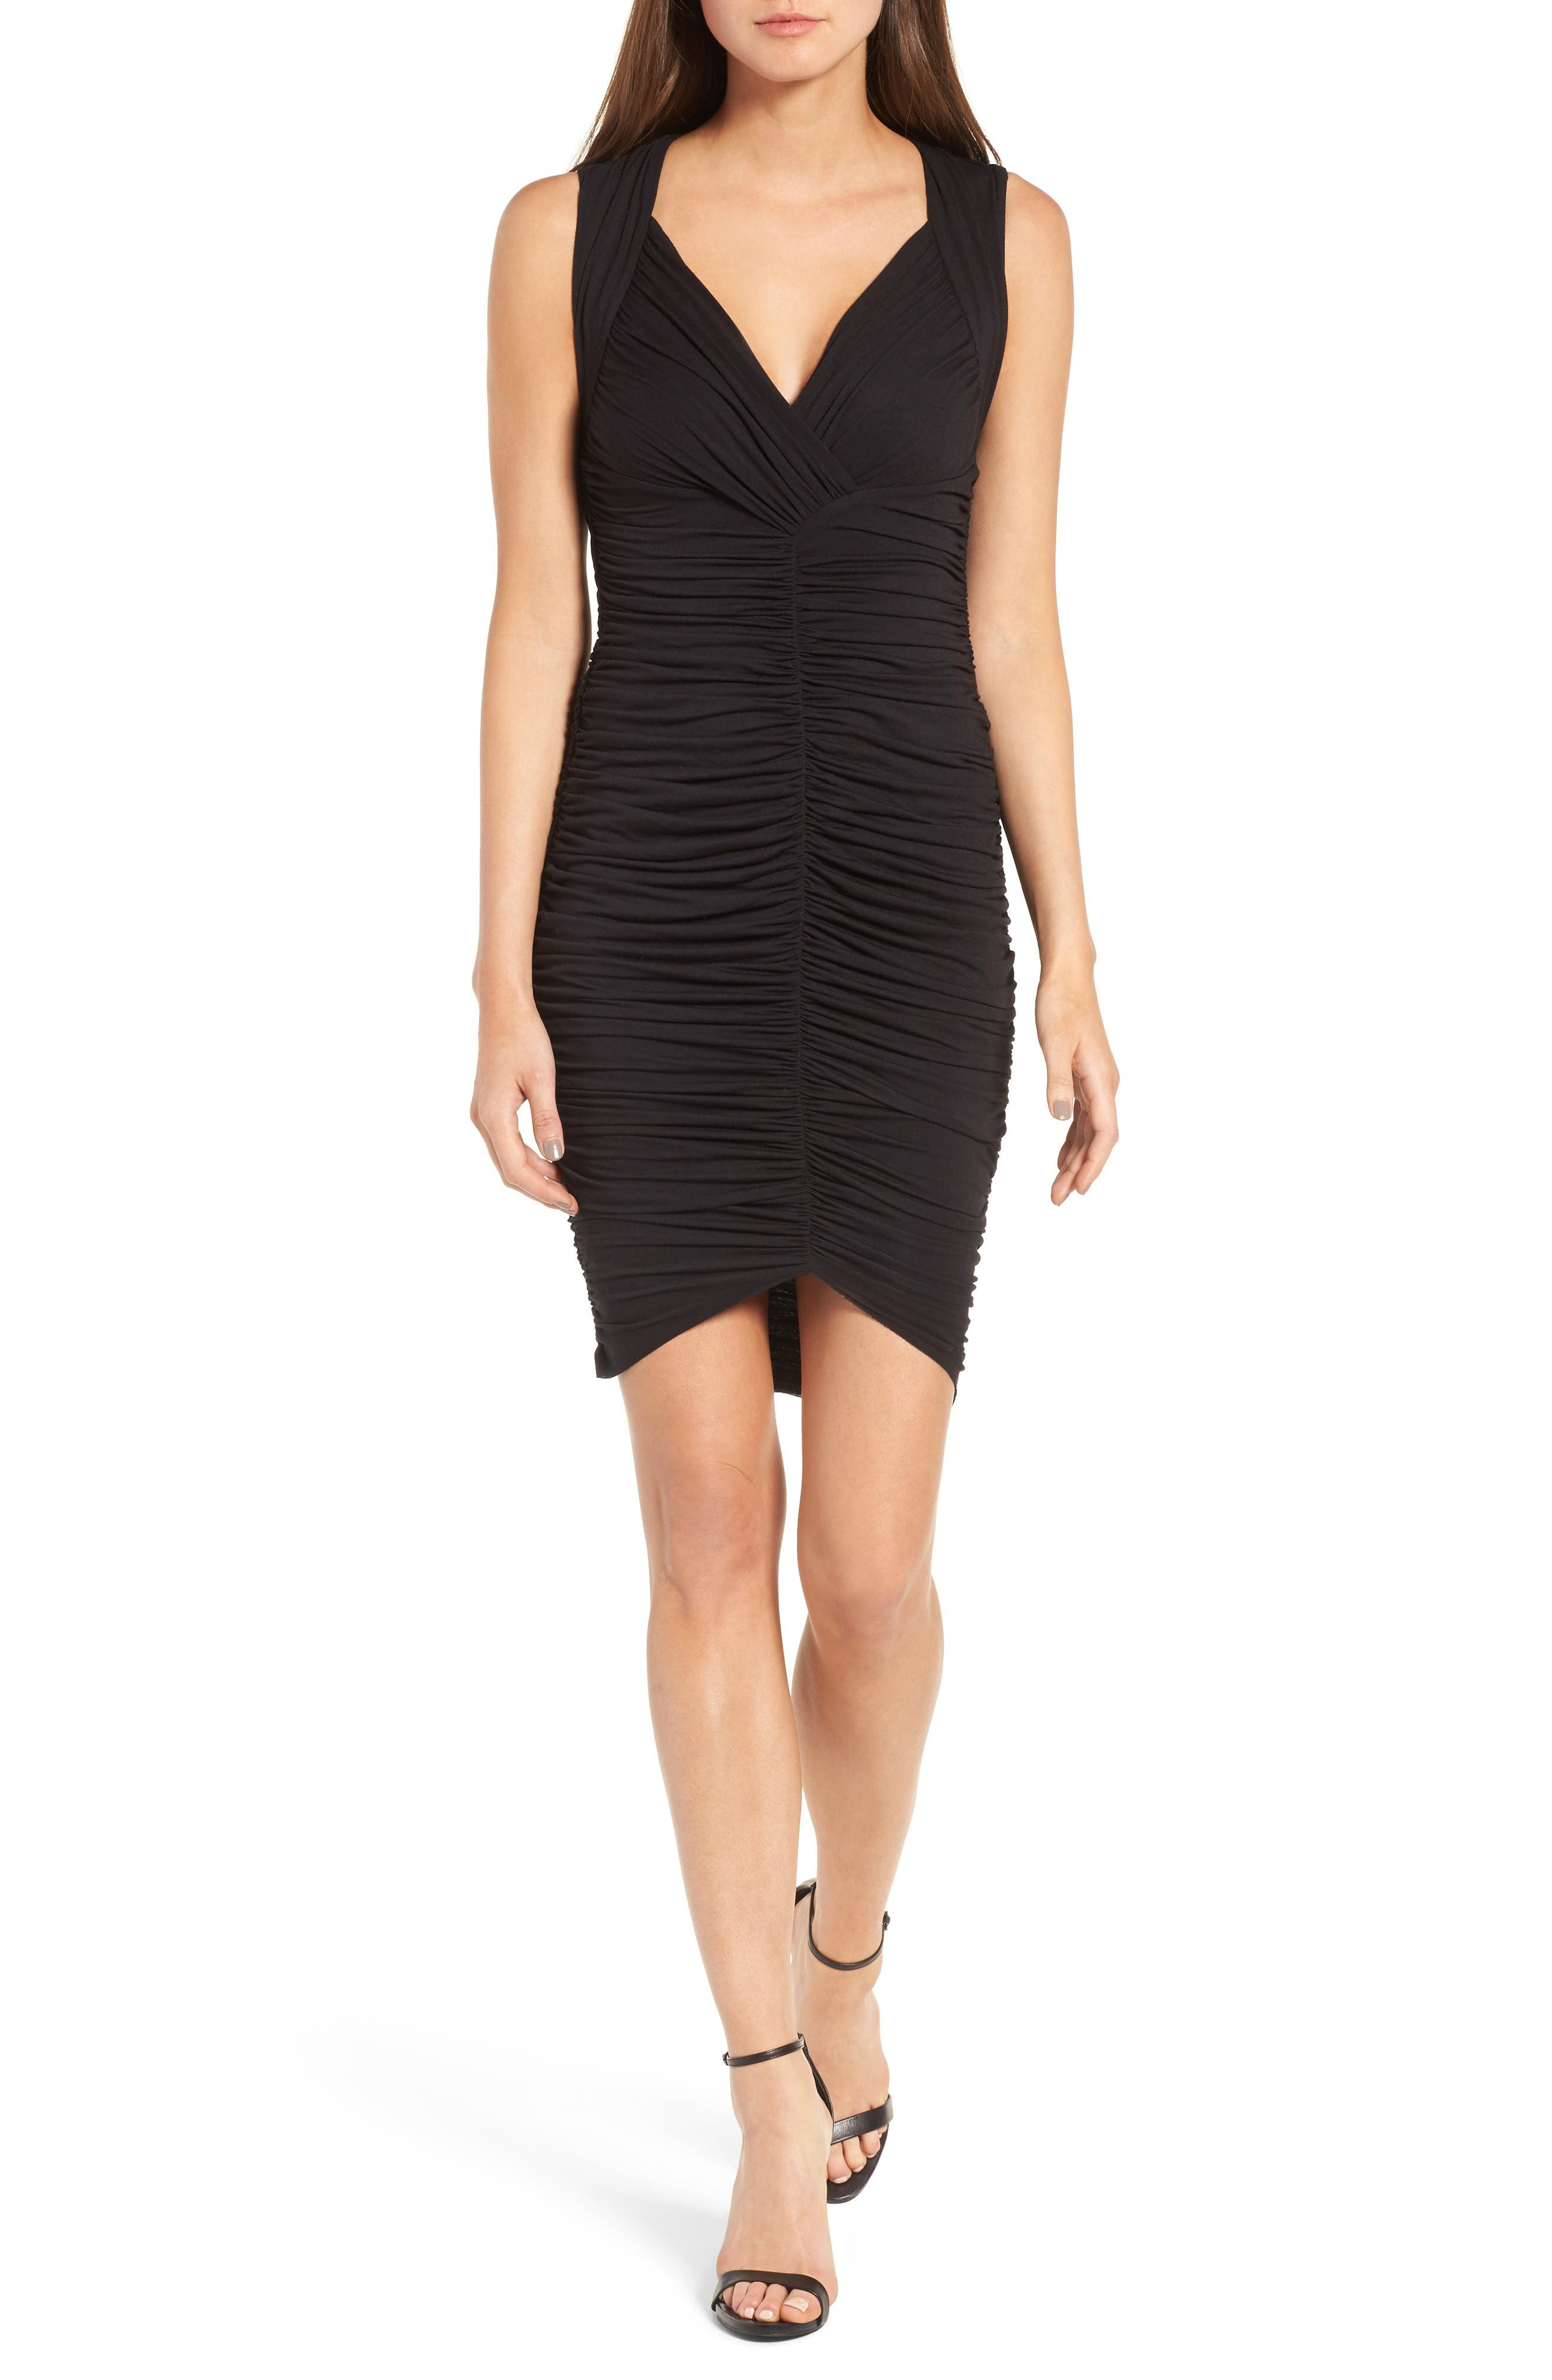 Bailey 44 Dalma Body-Con Dress